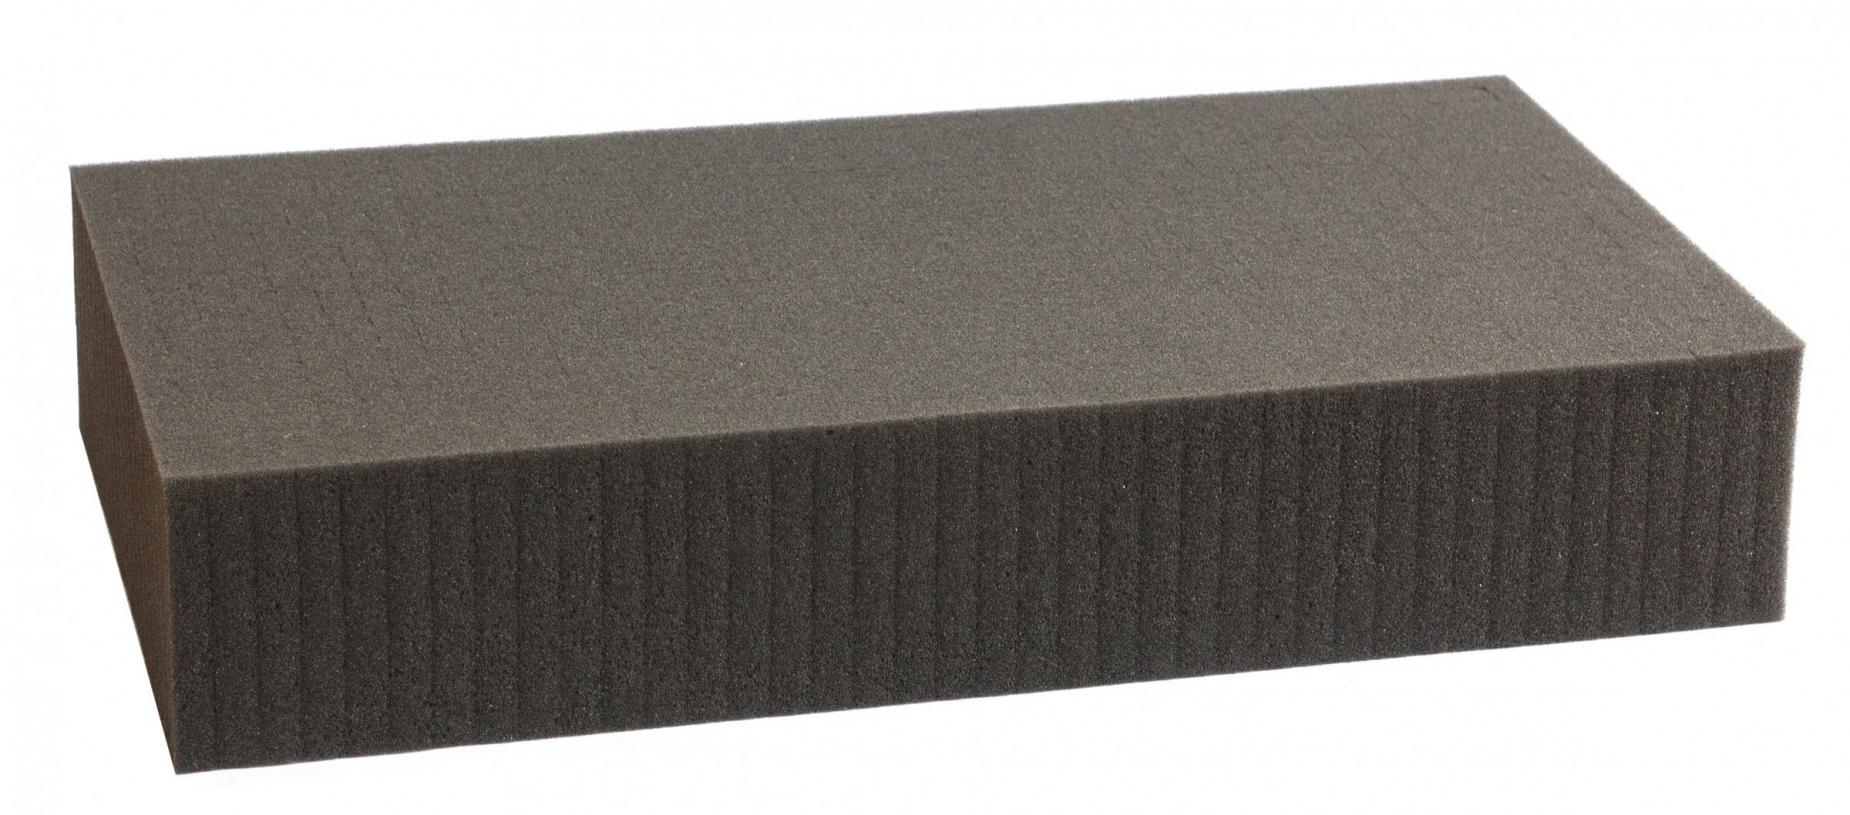 550 mm x 350 mm x 90 mm - Raster 15 mm - Pick and Pluck / Pre-Cubed foam tray